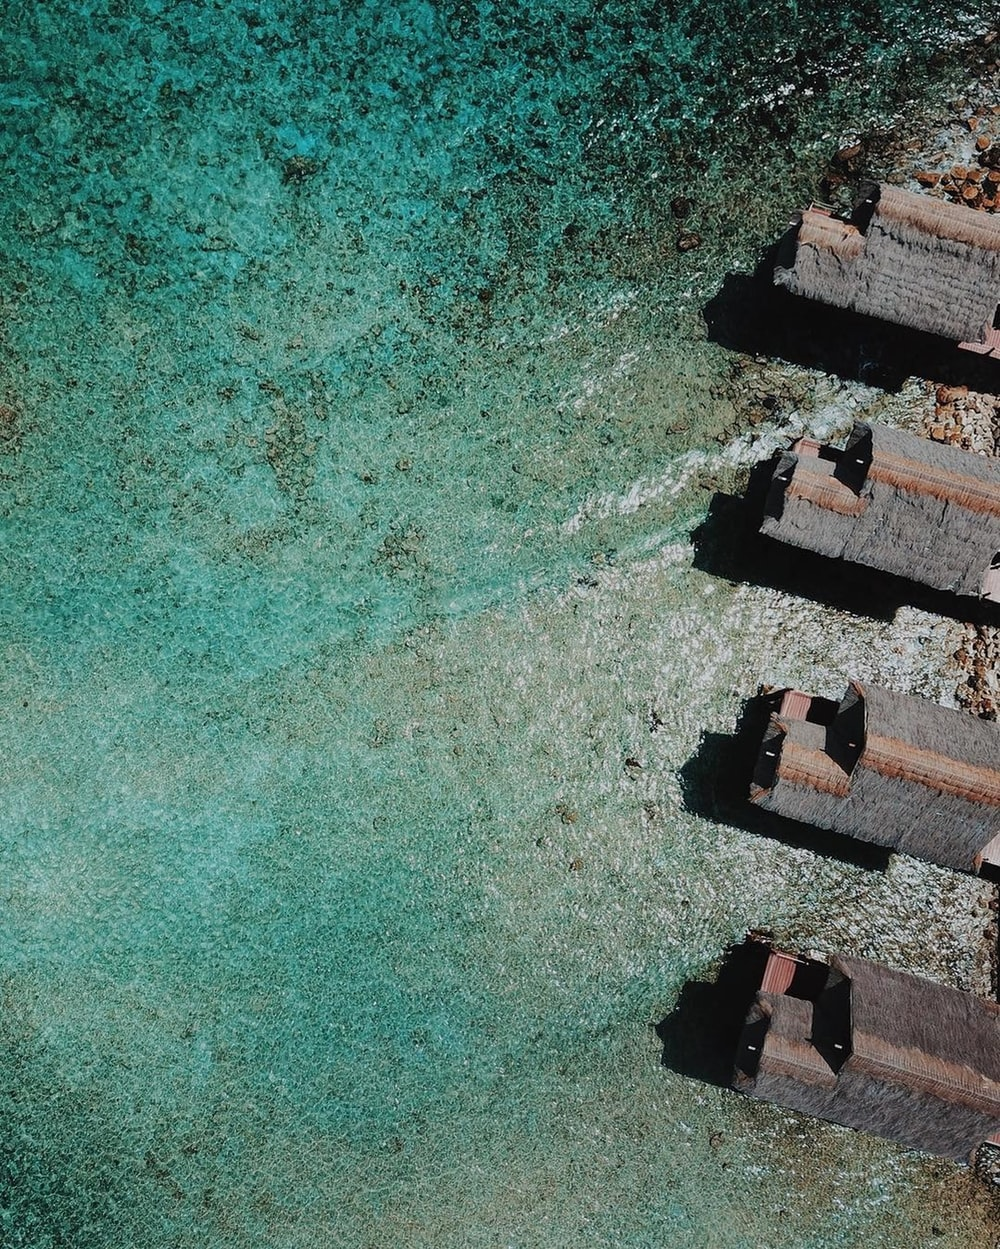 aerial view of brown concrete building beside body of water during daytime